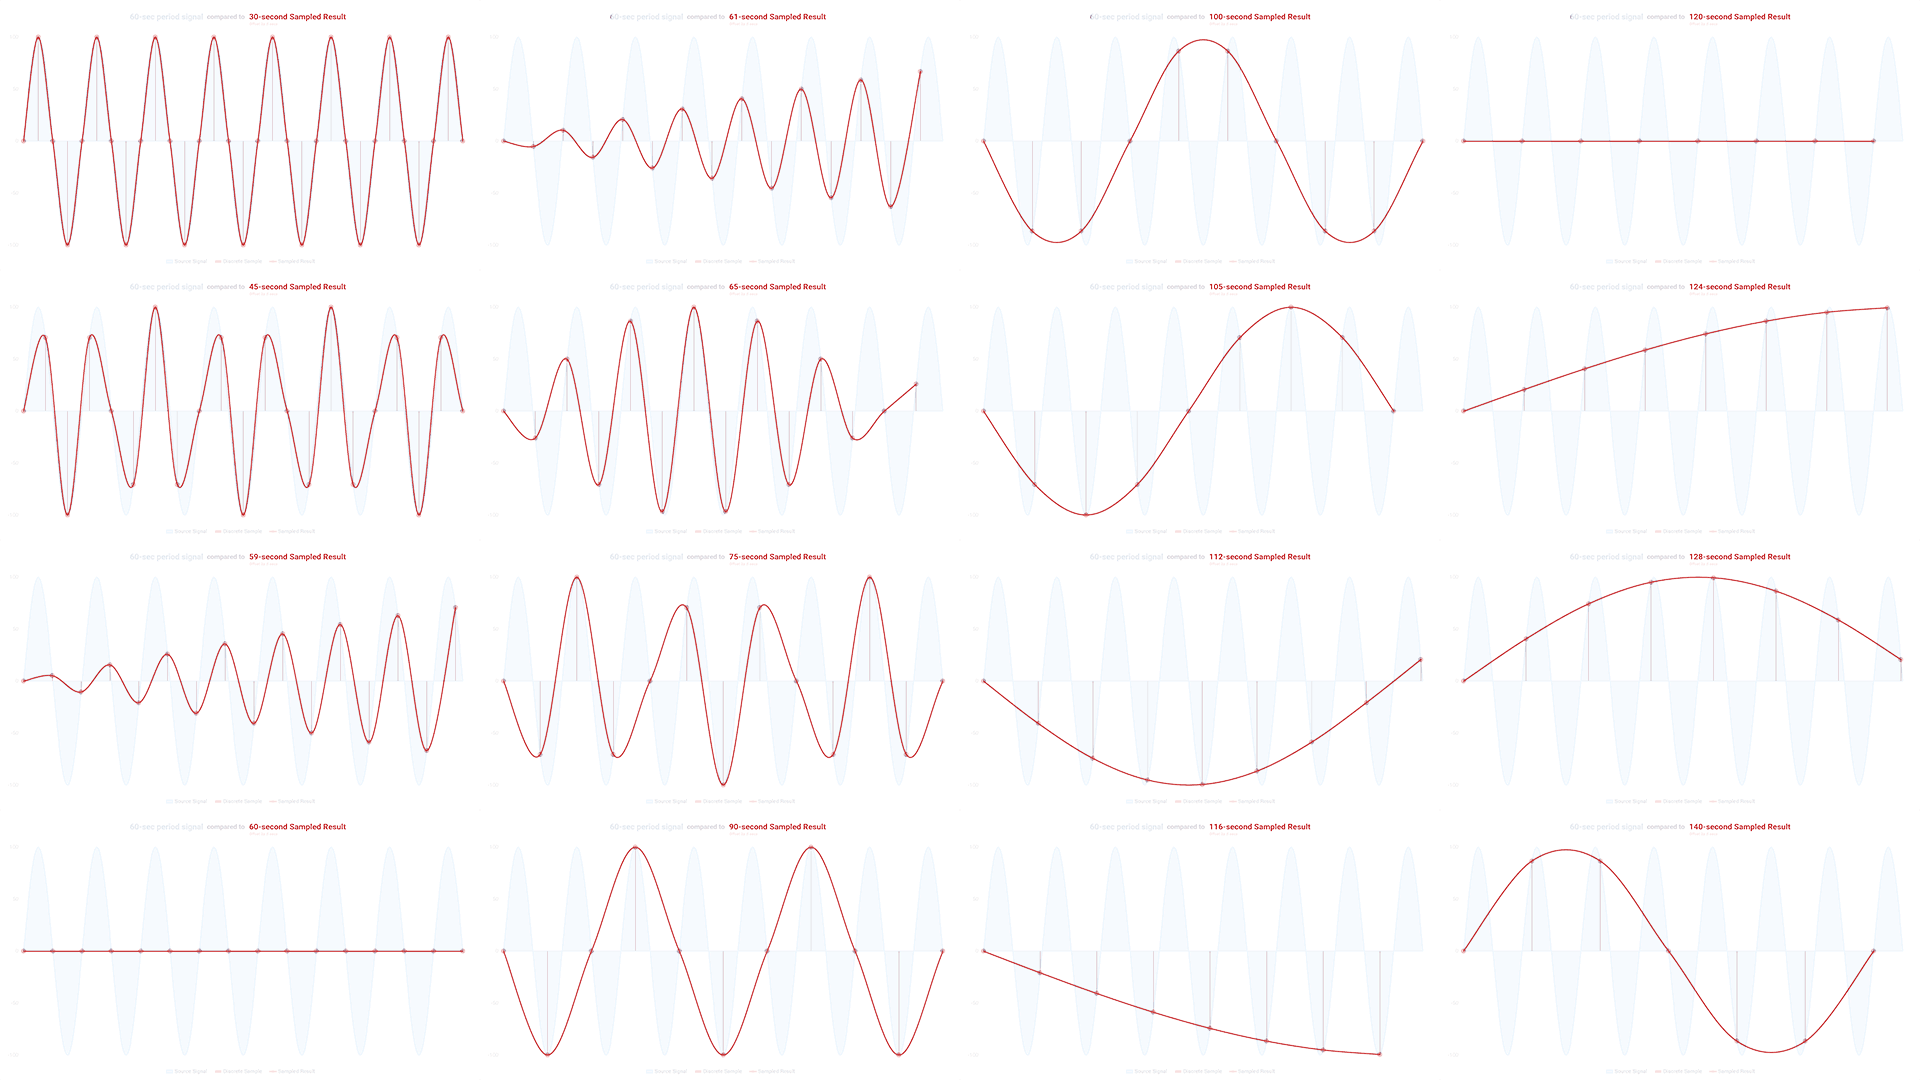 Aliasing: 60-second period signal compared to various sampled results